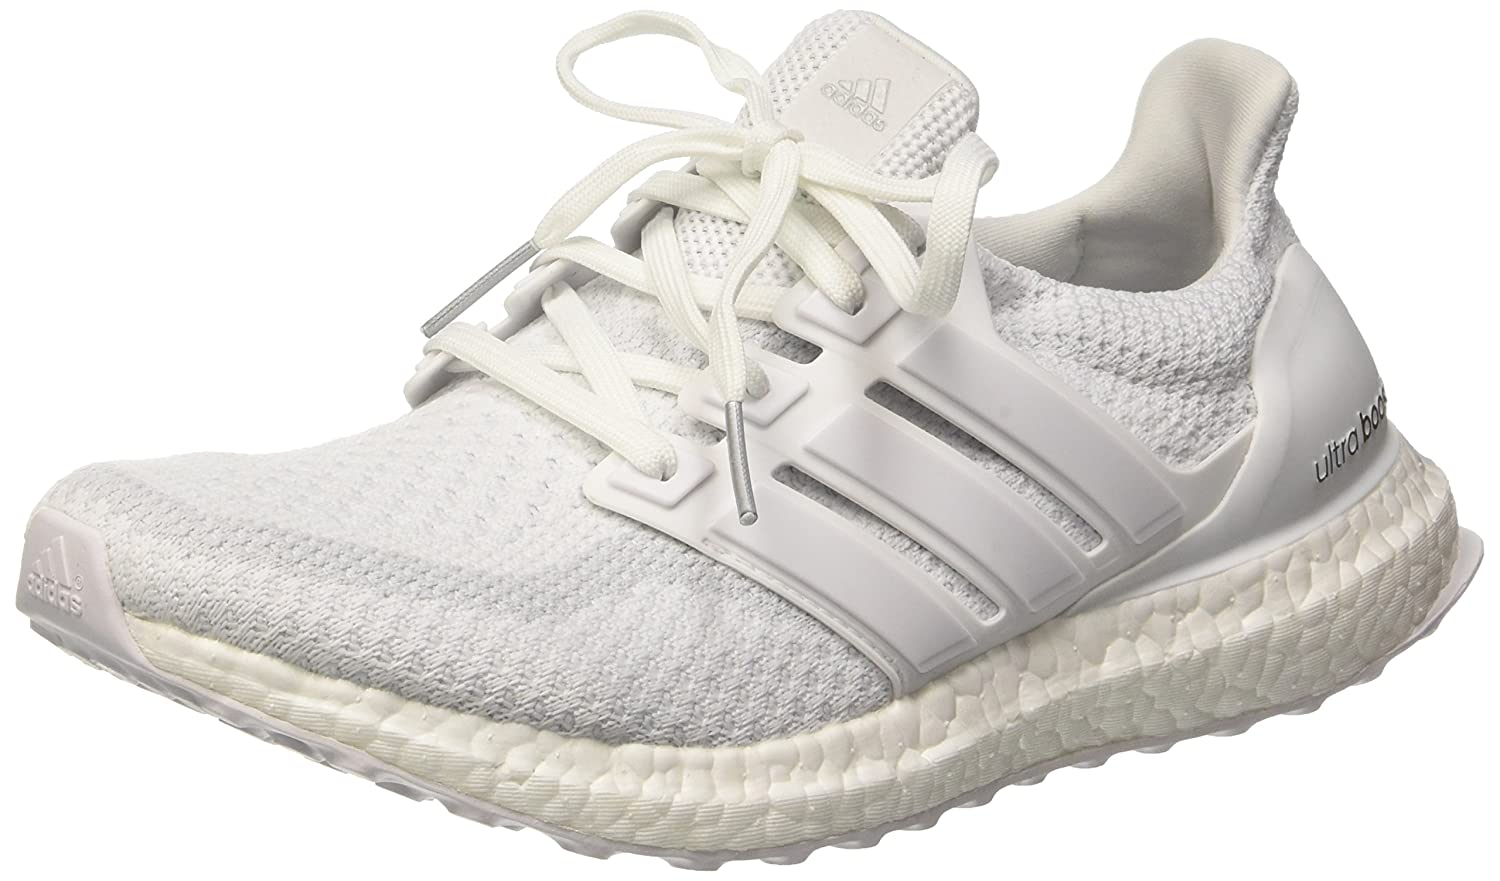 adidas Performance Men's Ultra Boost M Running Shoe B01FFCPCY6 9.5 D(M) US|White